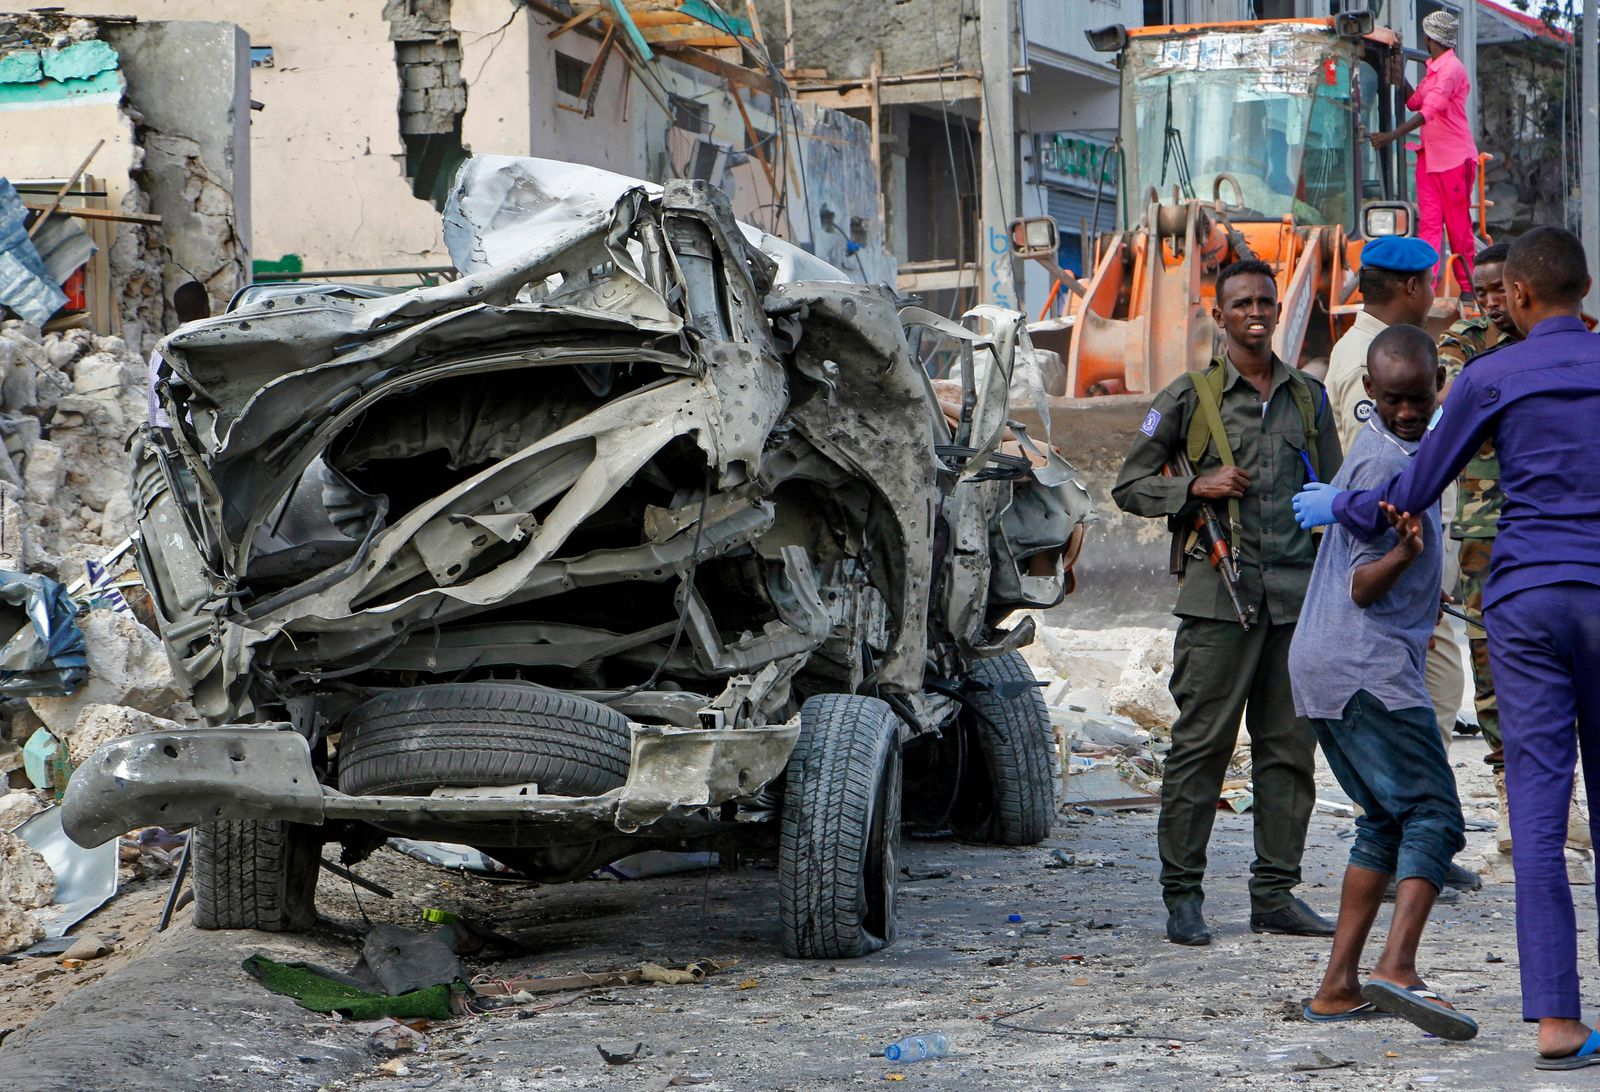 Security forces stand near the wreckage of an official vehicle that was destroyed in a bomb attack in the capital Mogadishu, Somalia Saturday, June 15, 2019. (AP Photo/Farah Abdi Warsameh)